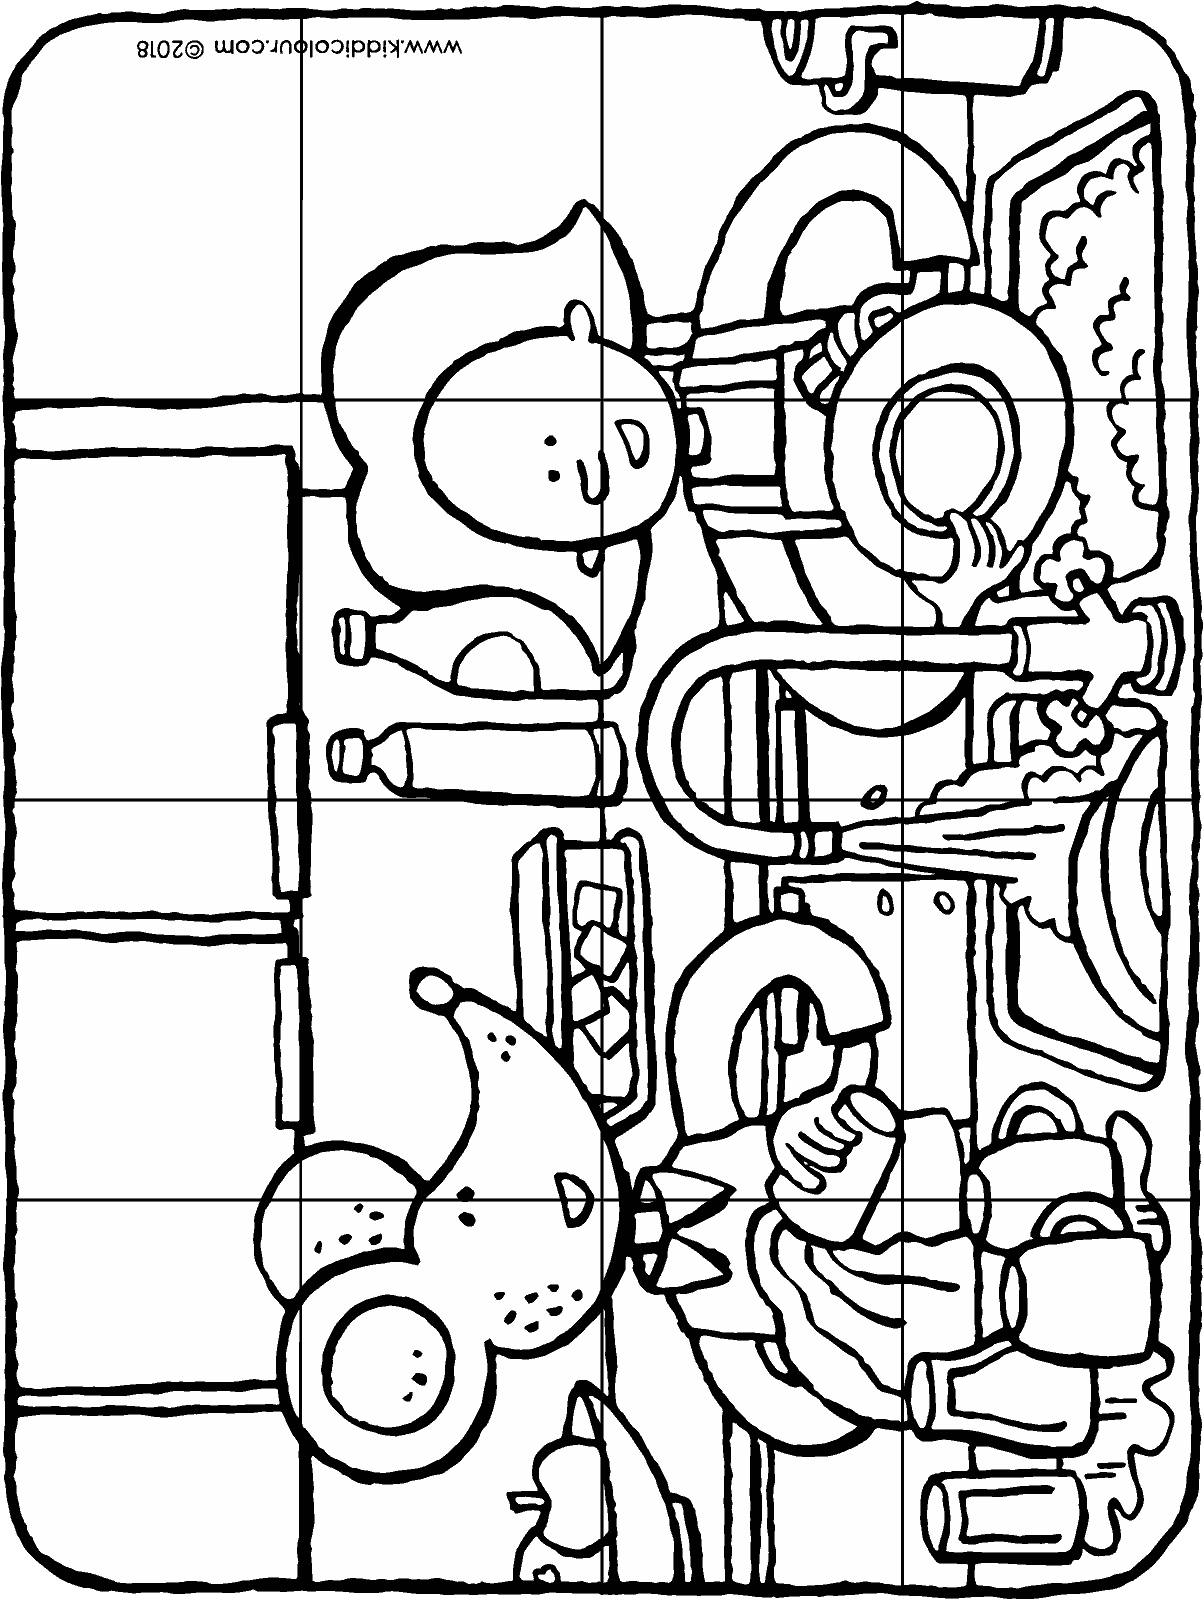 Emma and Thomas washing up puzzle 16 pieces colouring page drawing picture 01H